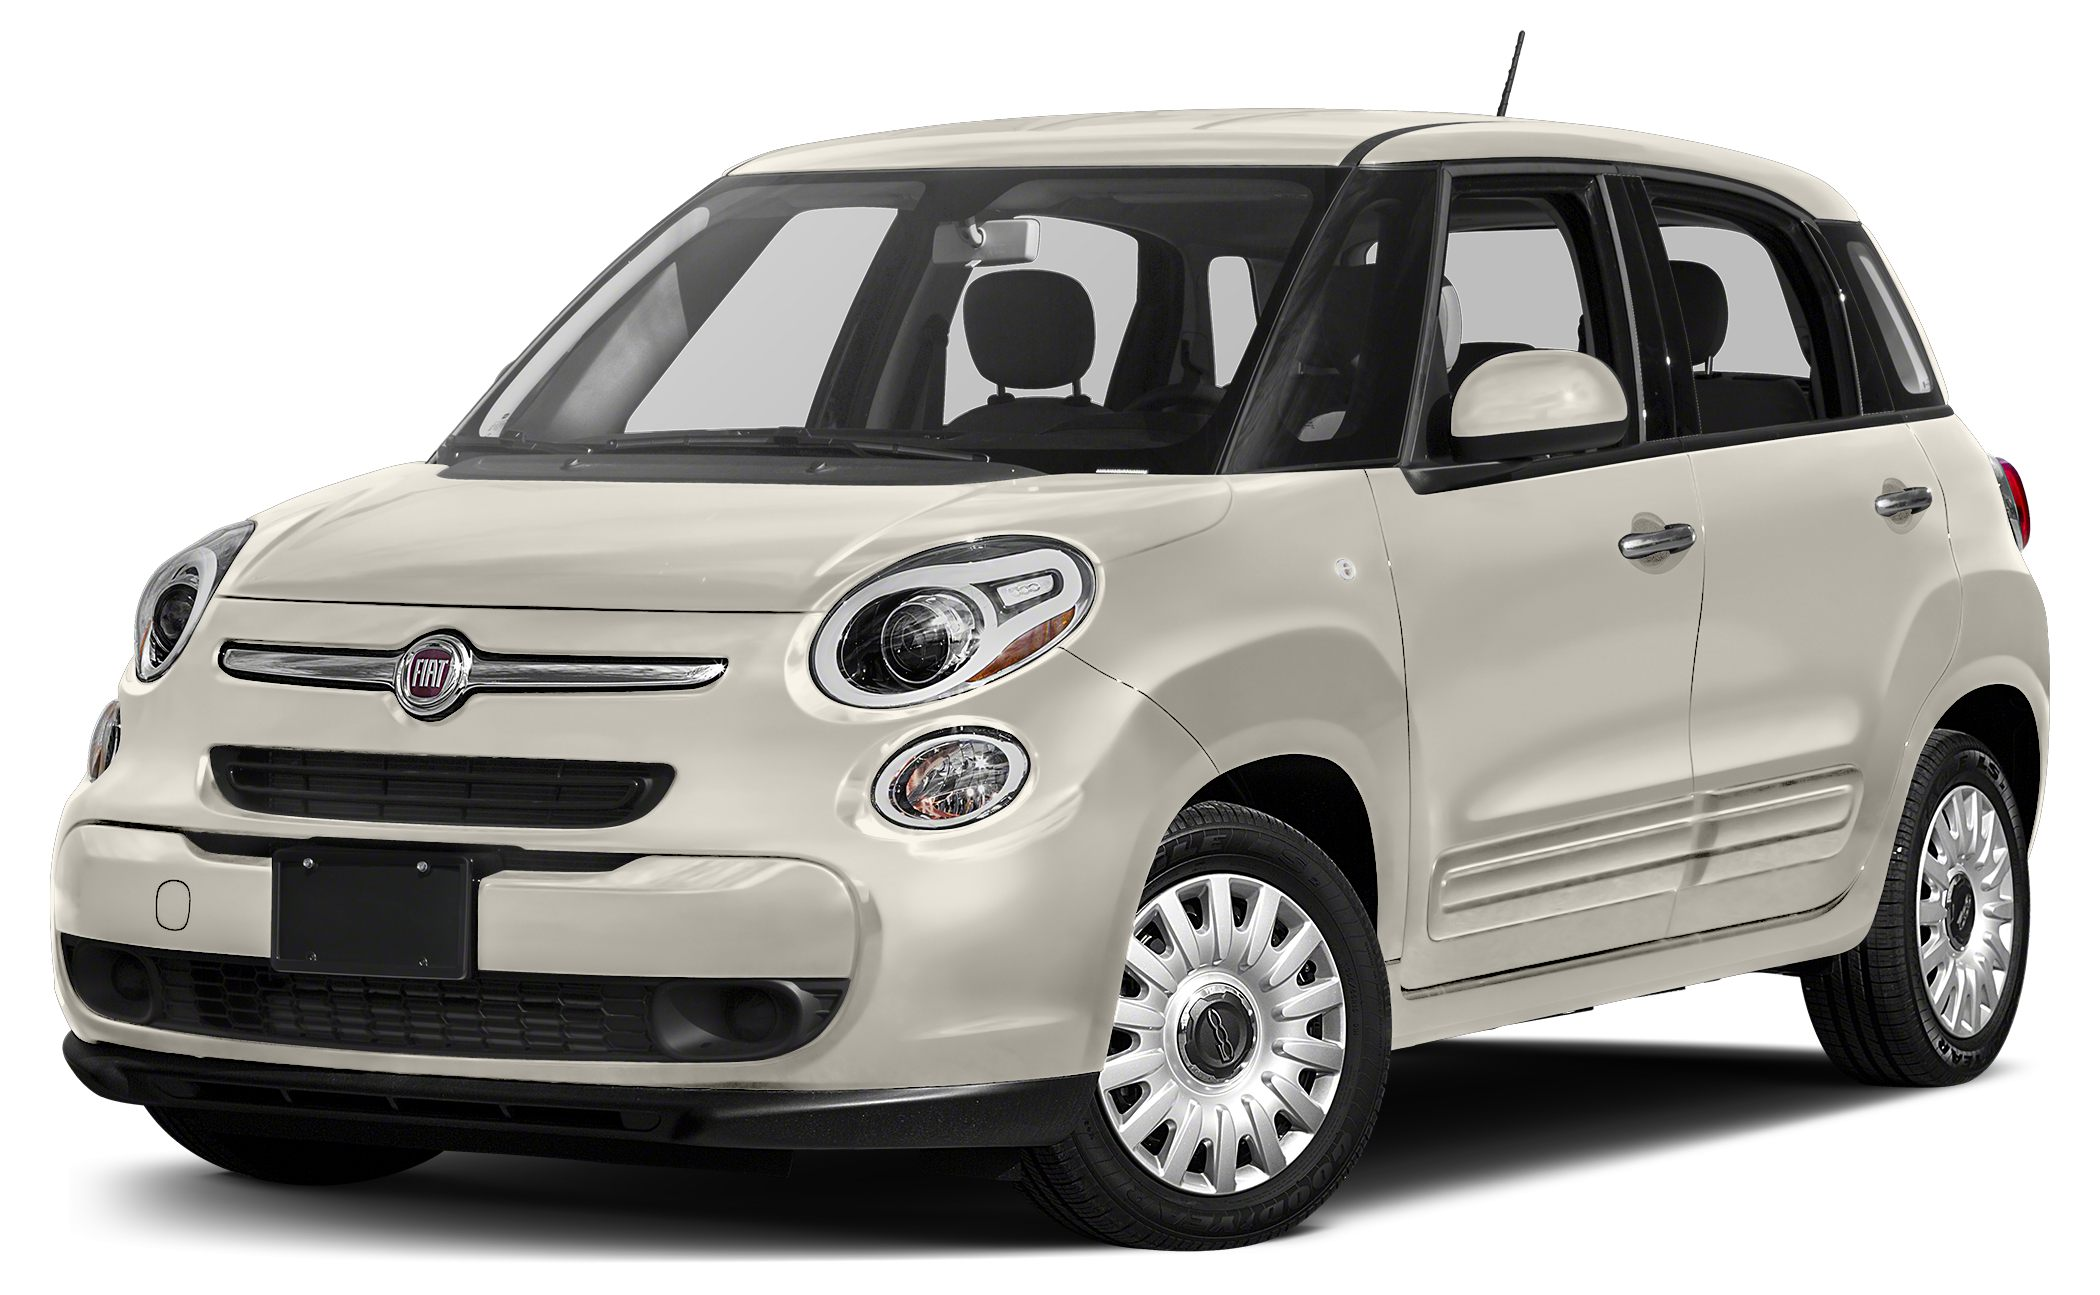 2014 FIAT 500L Easy Recent Arrival Miles 66329Color Bianco White Stock U18536B VIN ZFBCF